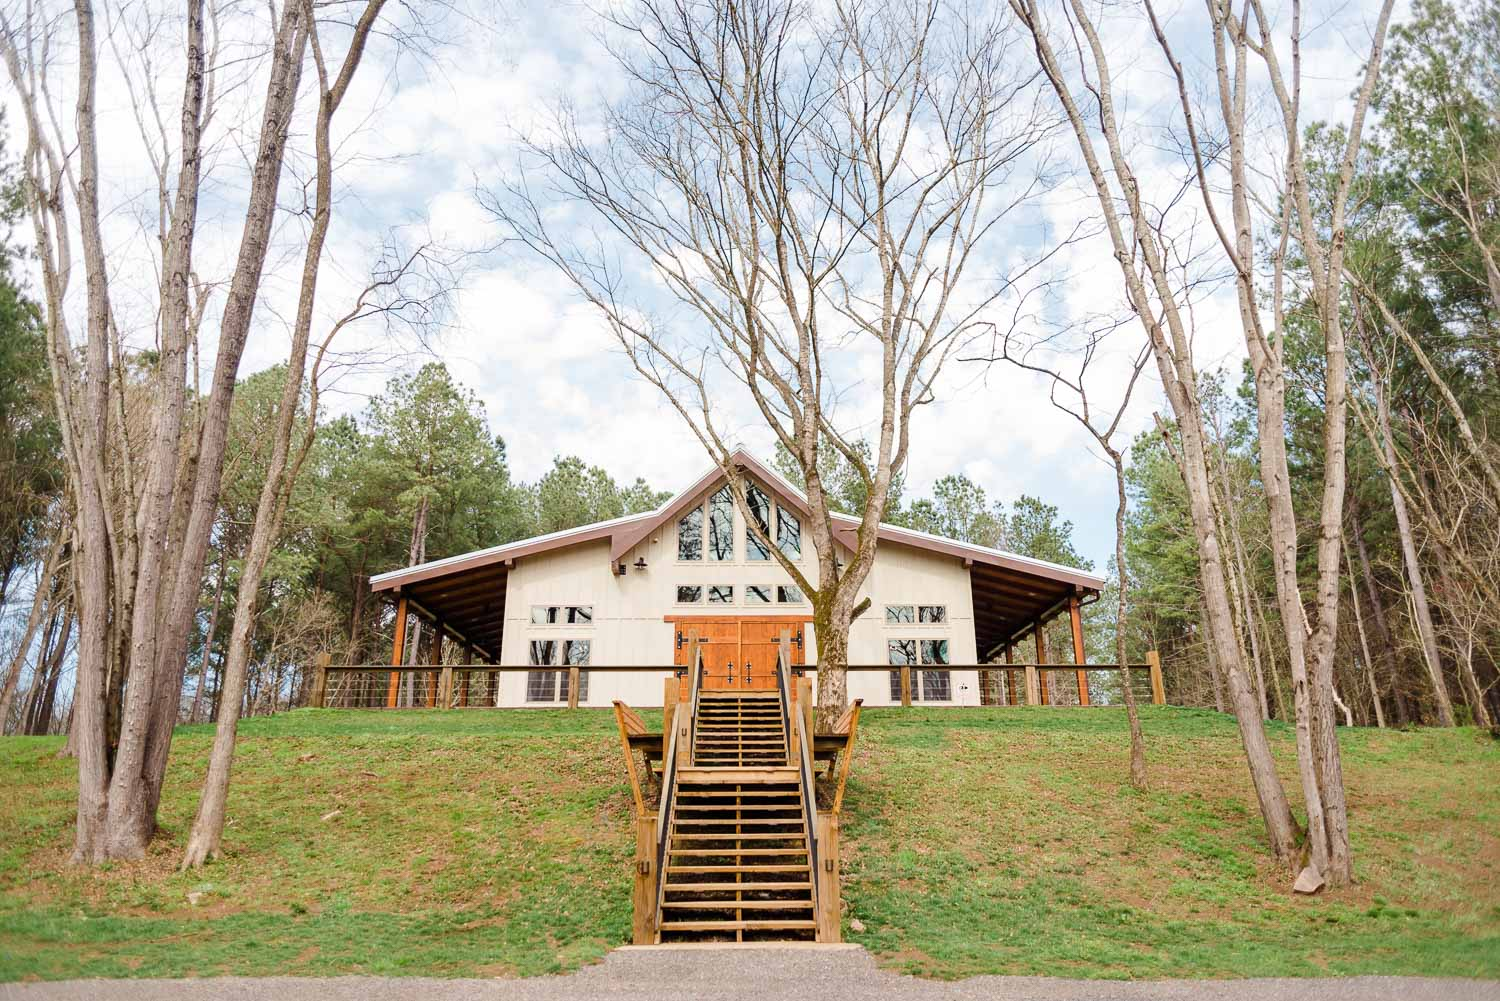 riverview side of the hiwassee river weddings venue on a march day